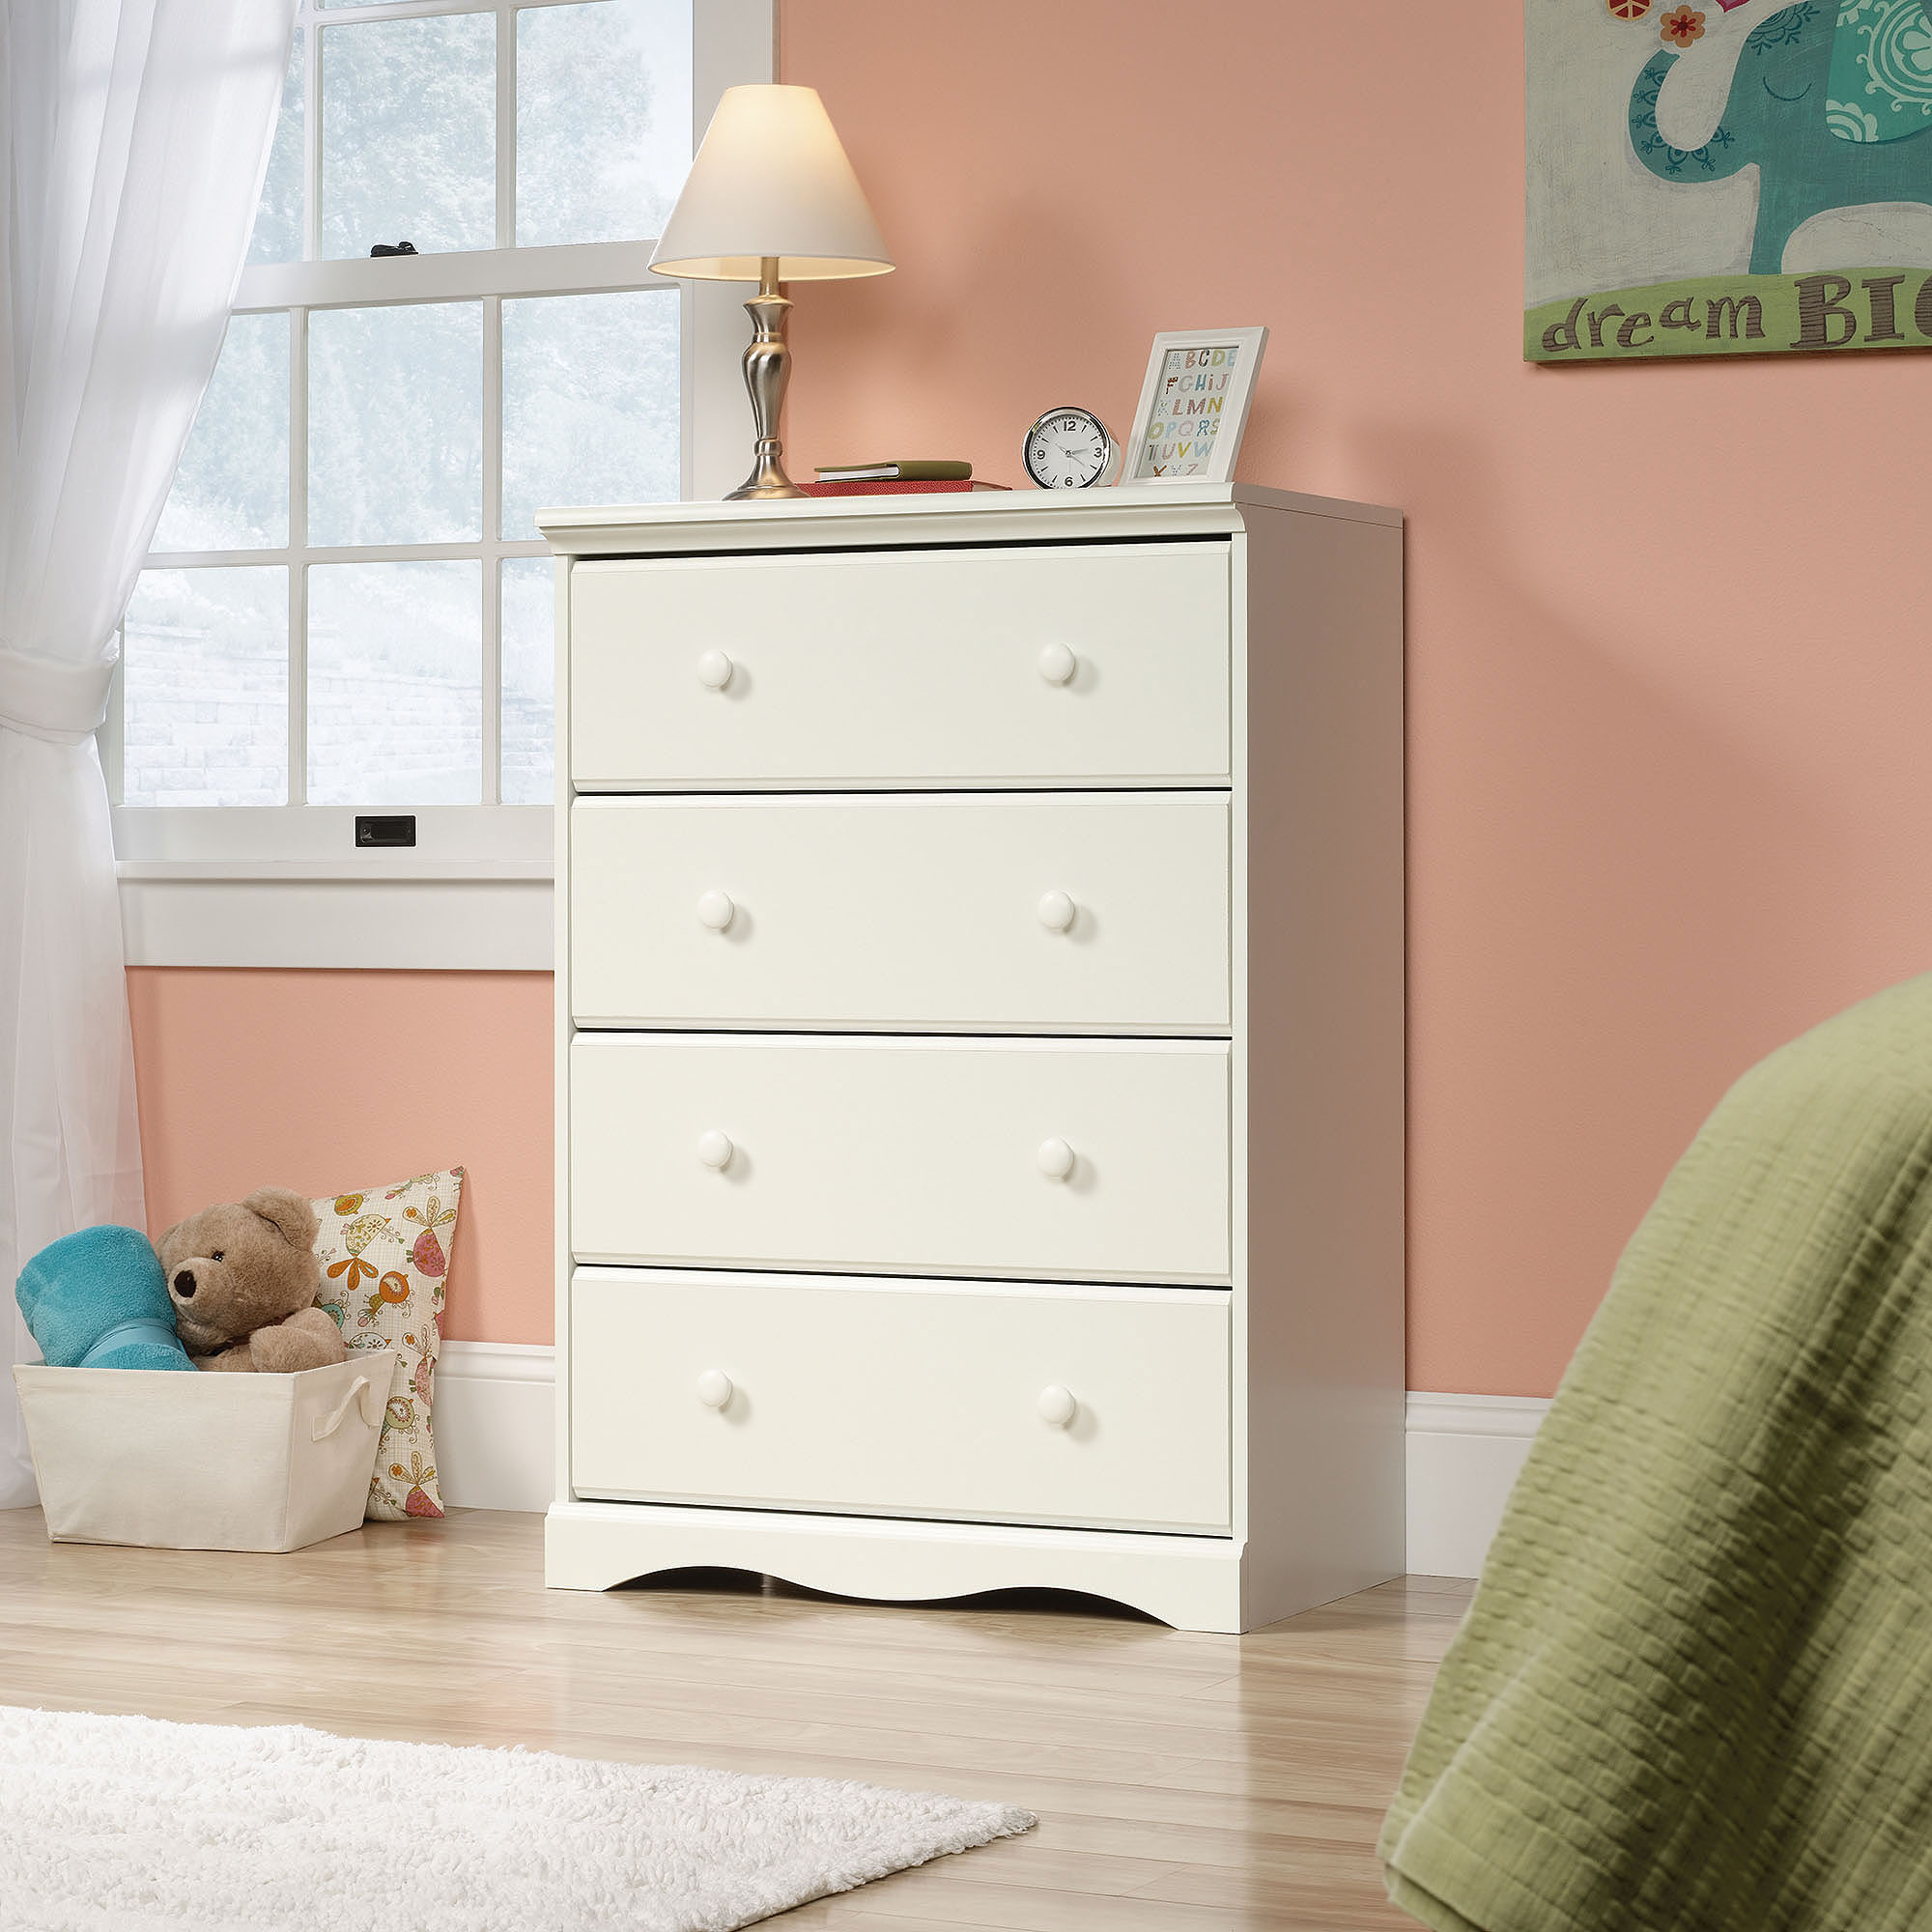 Sauder Pogo 4 Drawer Chest in Soft White by Sauder